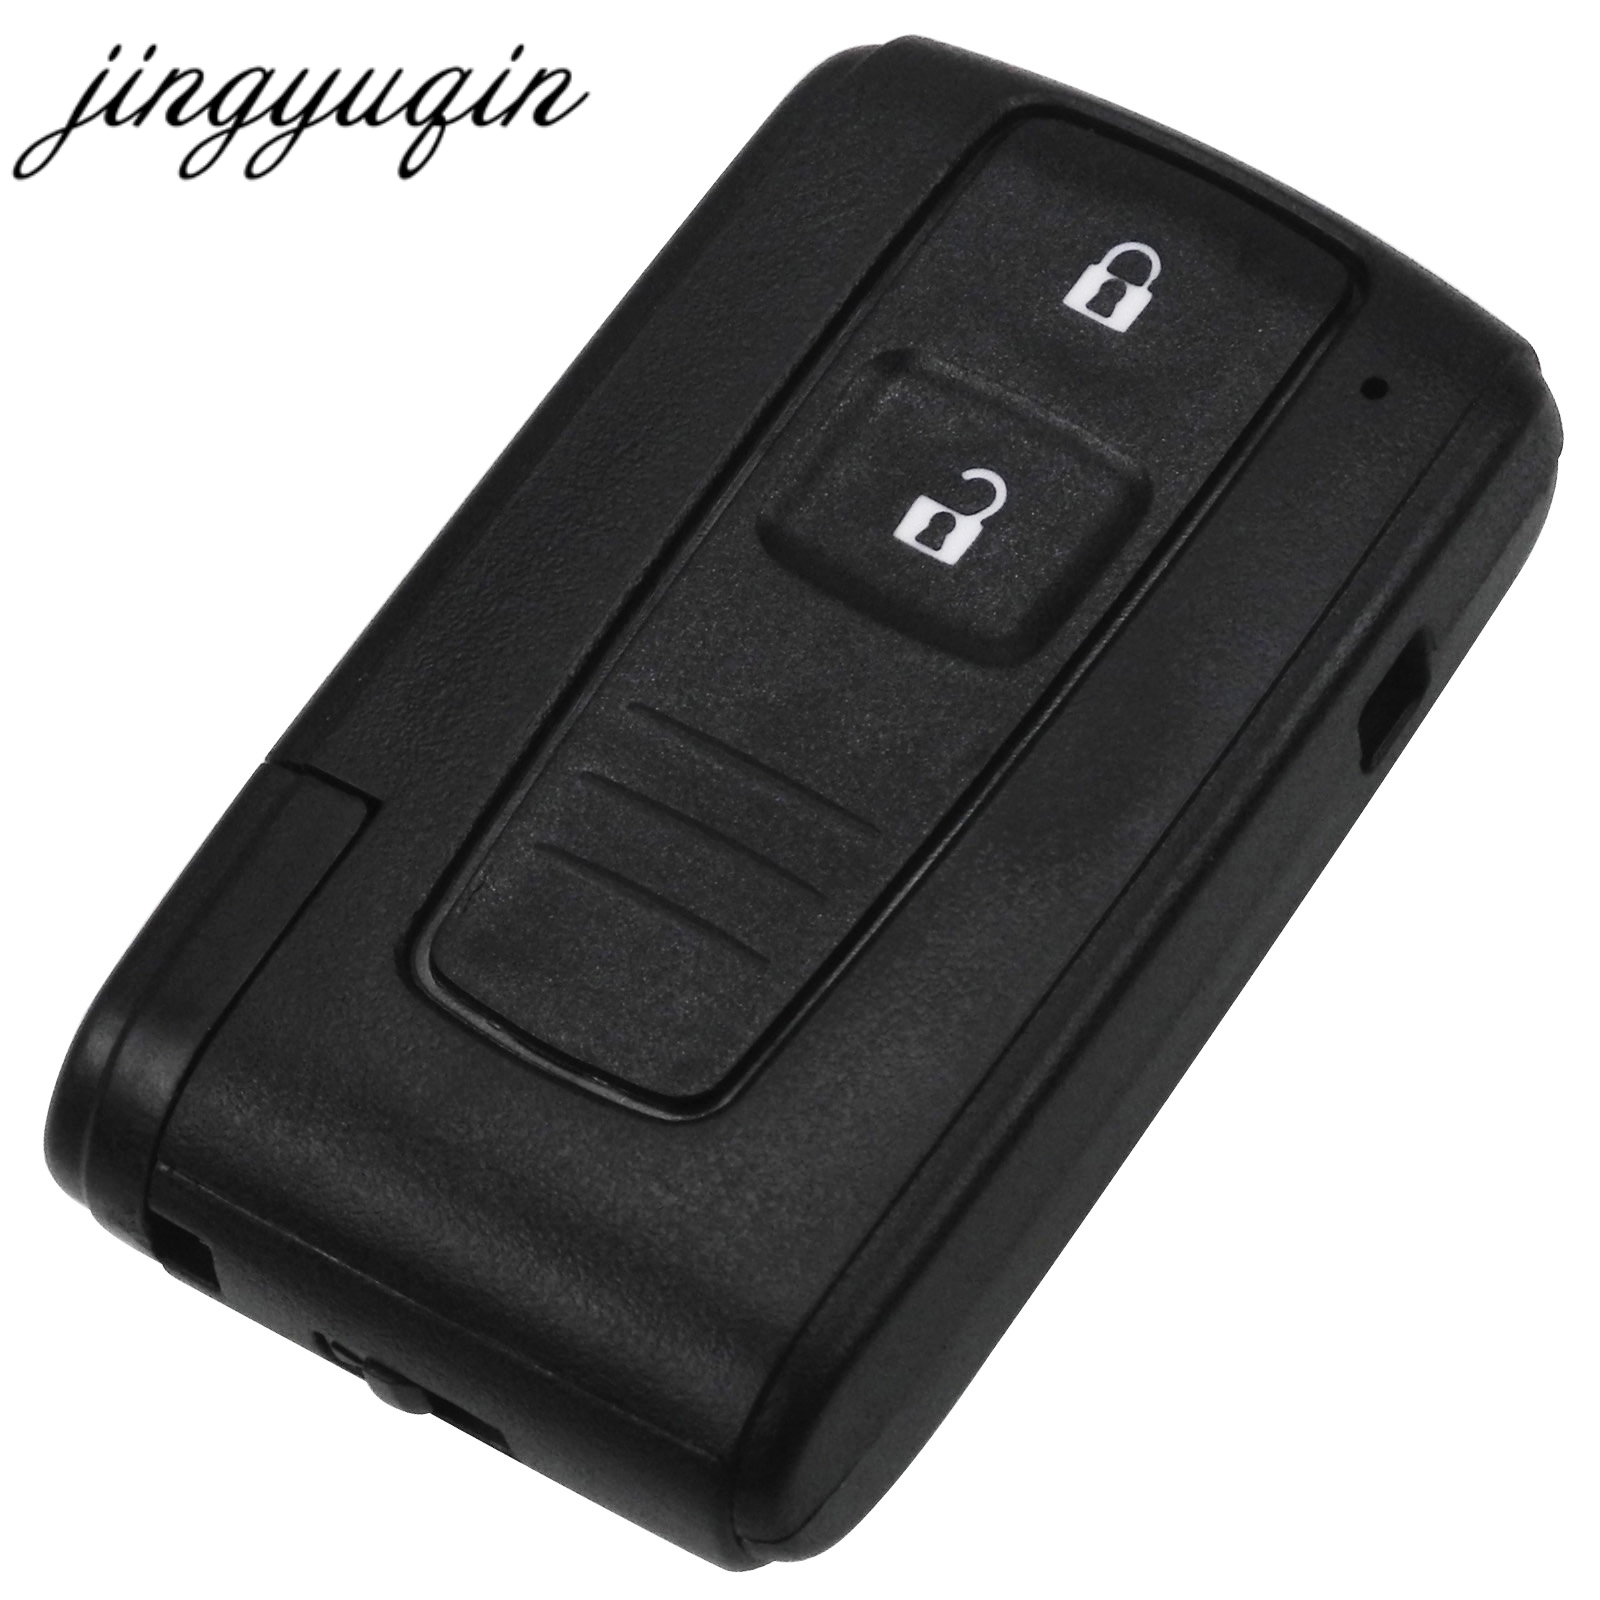 jingyuqin 2 BUTTON REMOTE KEY CASE FOR TOYOTA PRIUS COROLLA VERSO TOY43 BLADE-in Car Key from Automobiles & Motorcycles